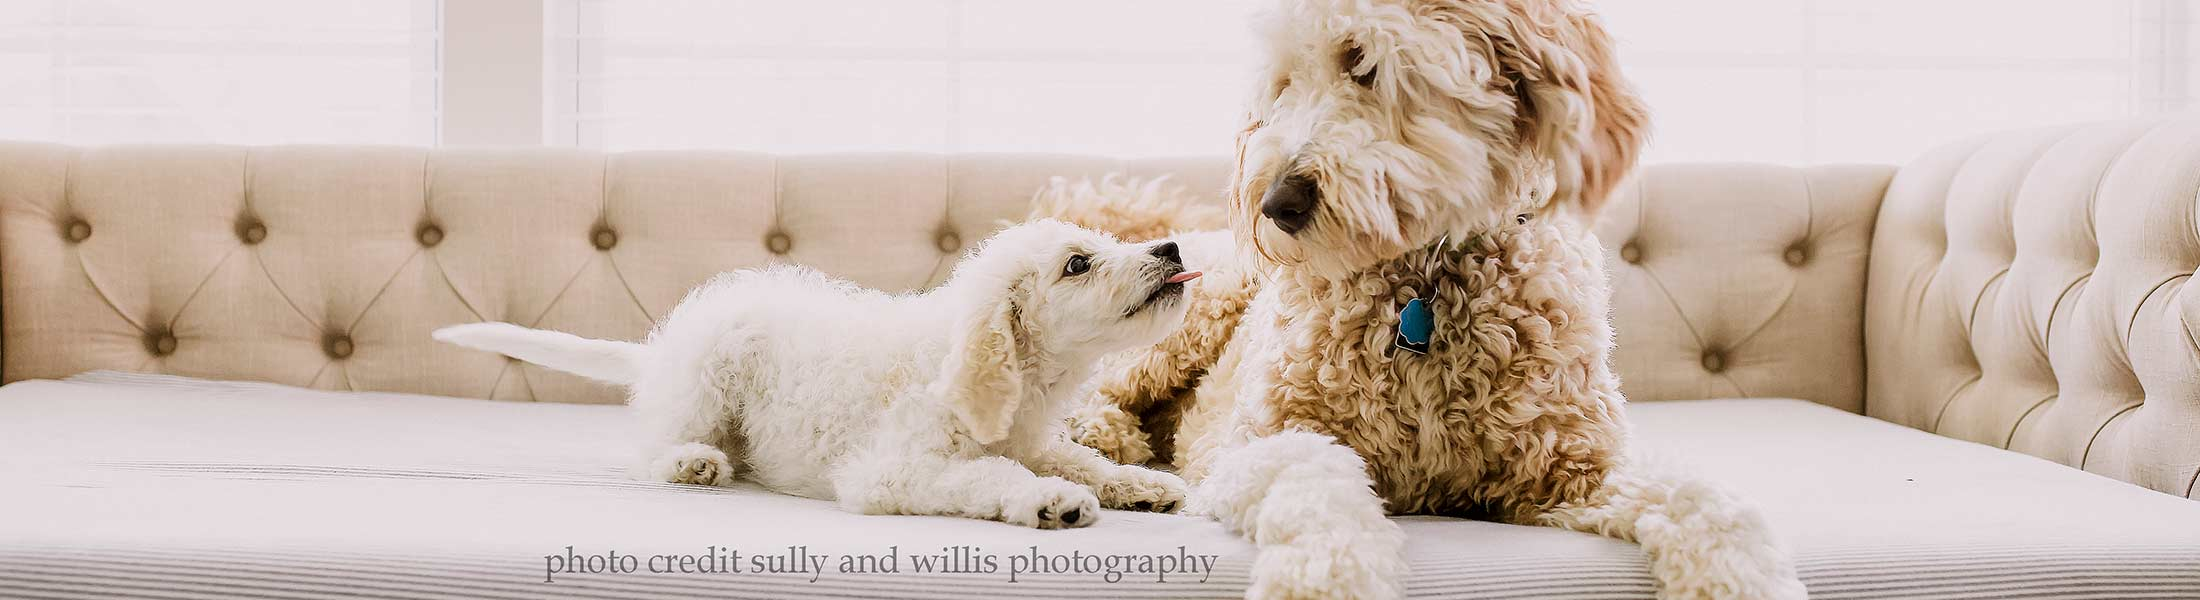 A picture of one of our Goldendoodle puppies playing with their new older brother - adorable!